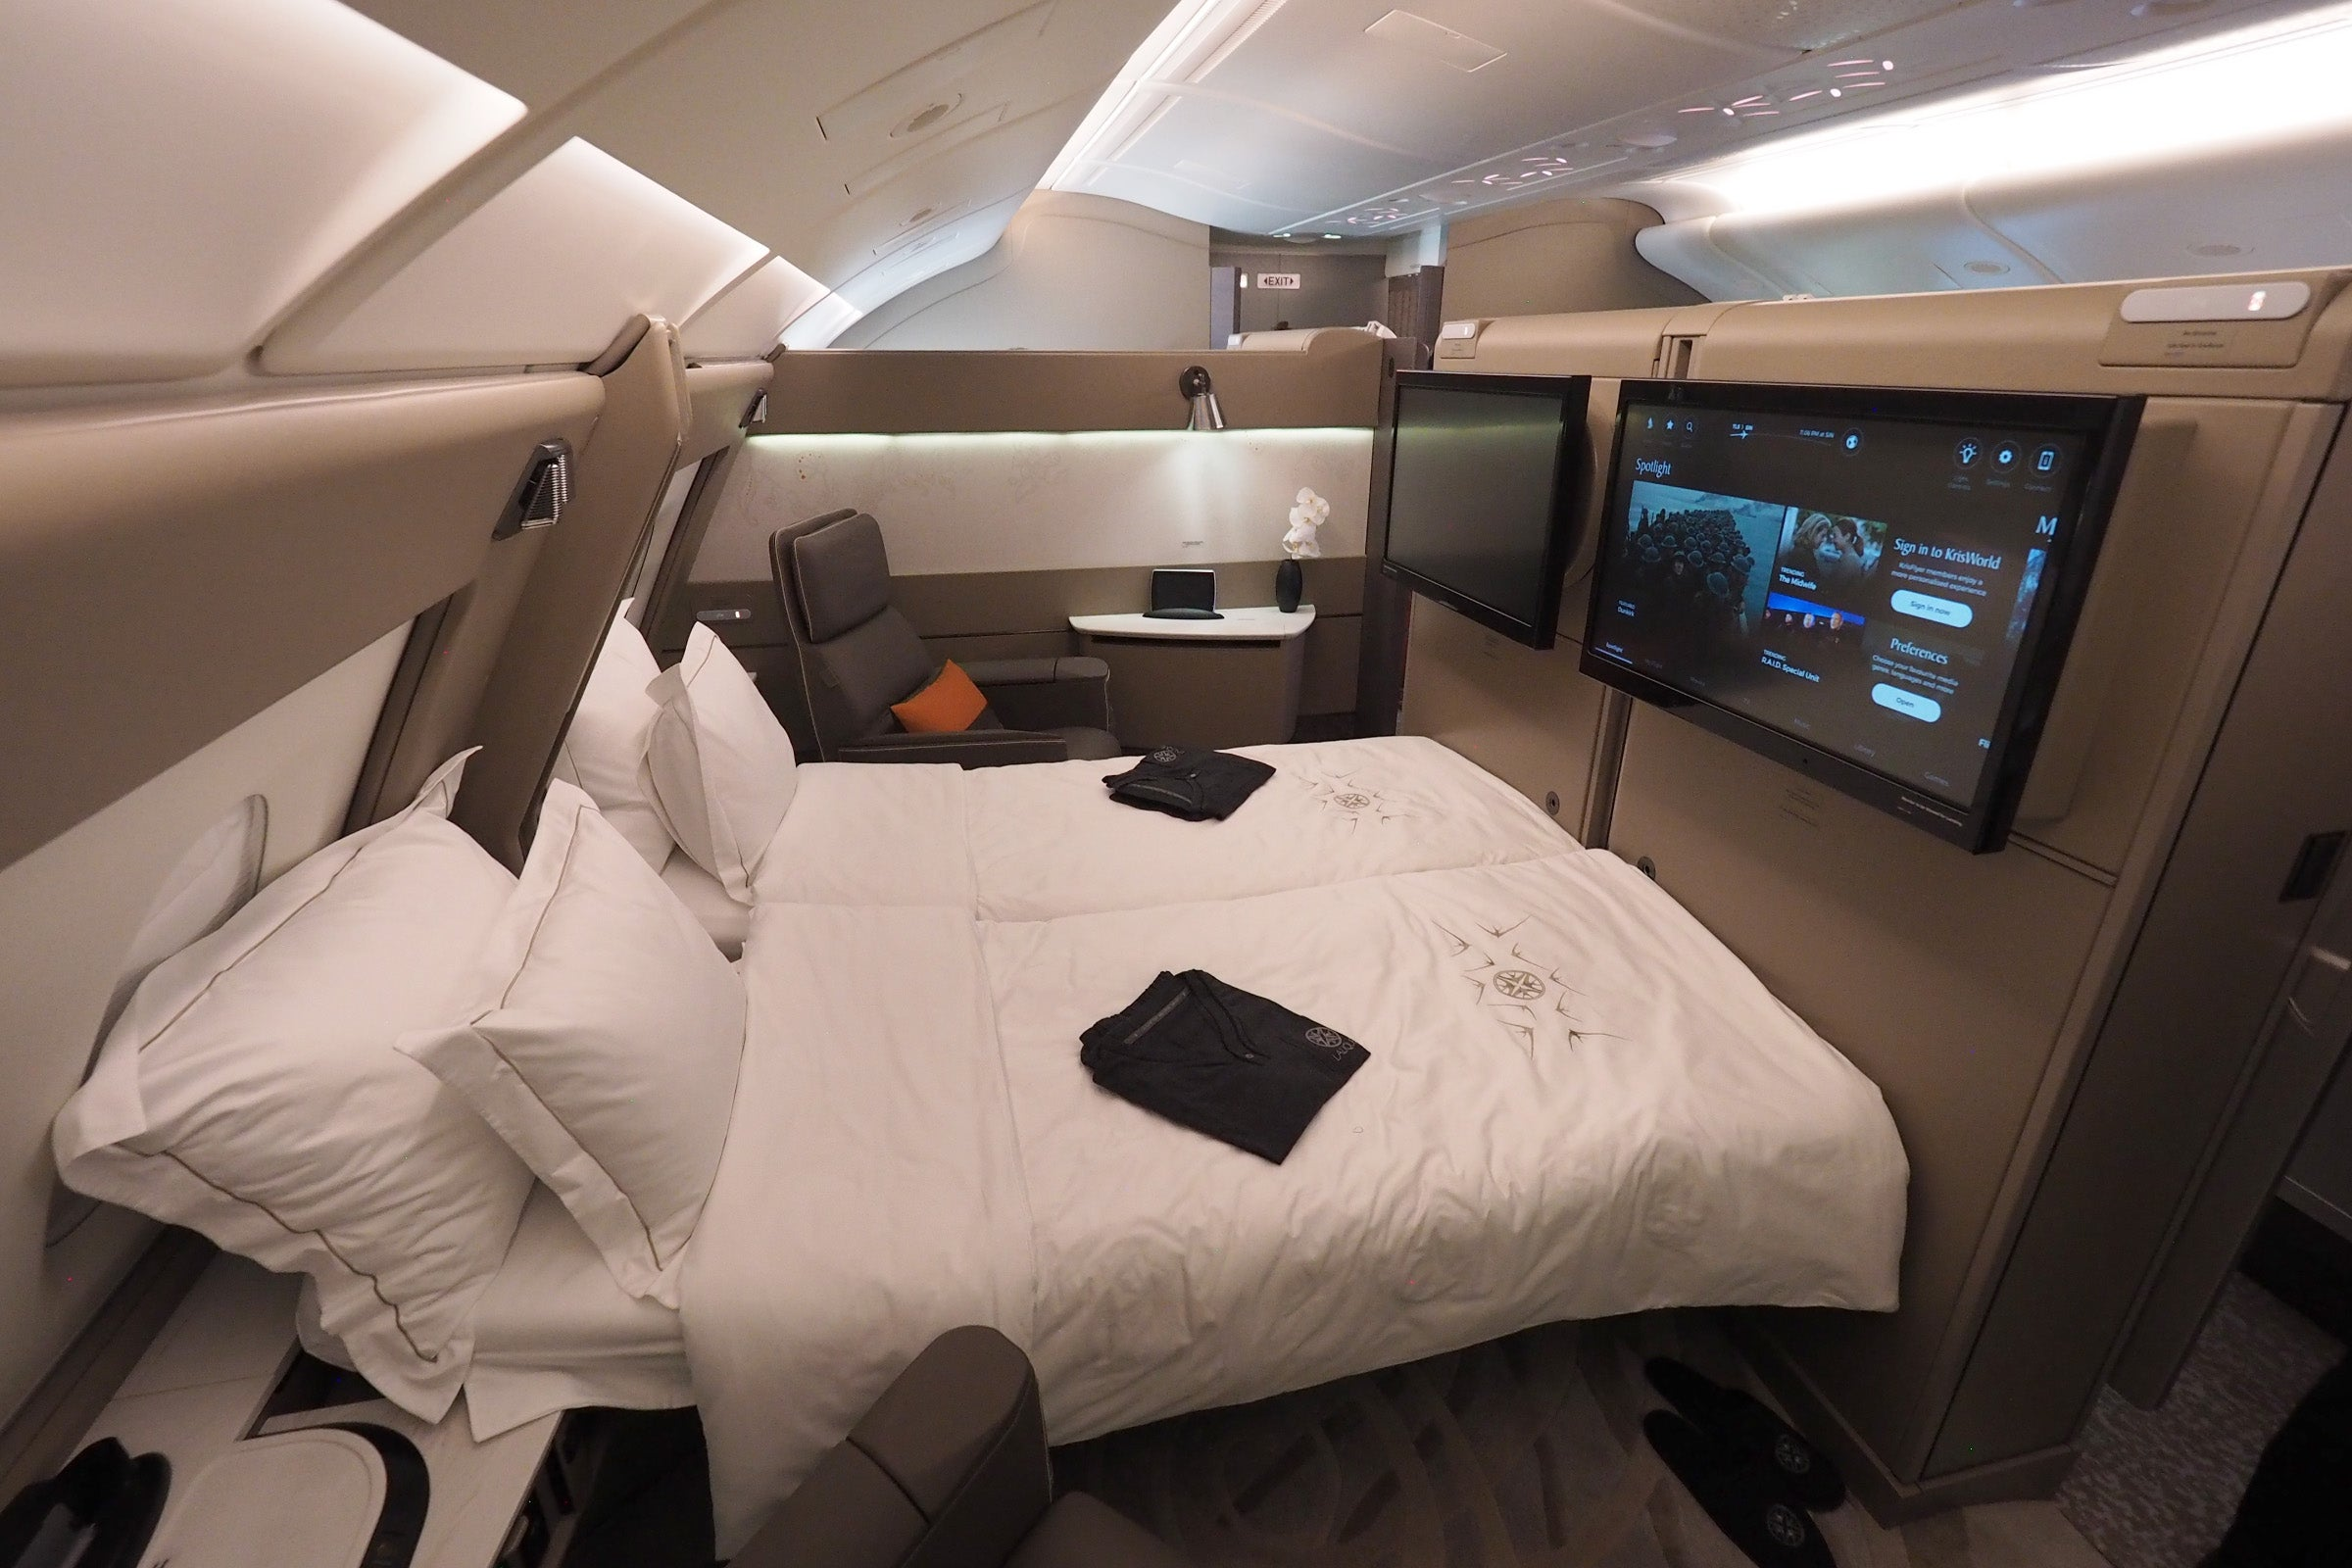 Perfect I Love Emiratesu0027 New First Class Suite On The 777 300ER, But If Youu0027re  Traveling With A Companion, Youu0027ll Need To Part Ways At The Door U2014 There  Are No ...